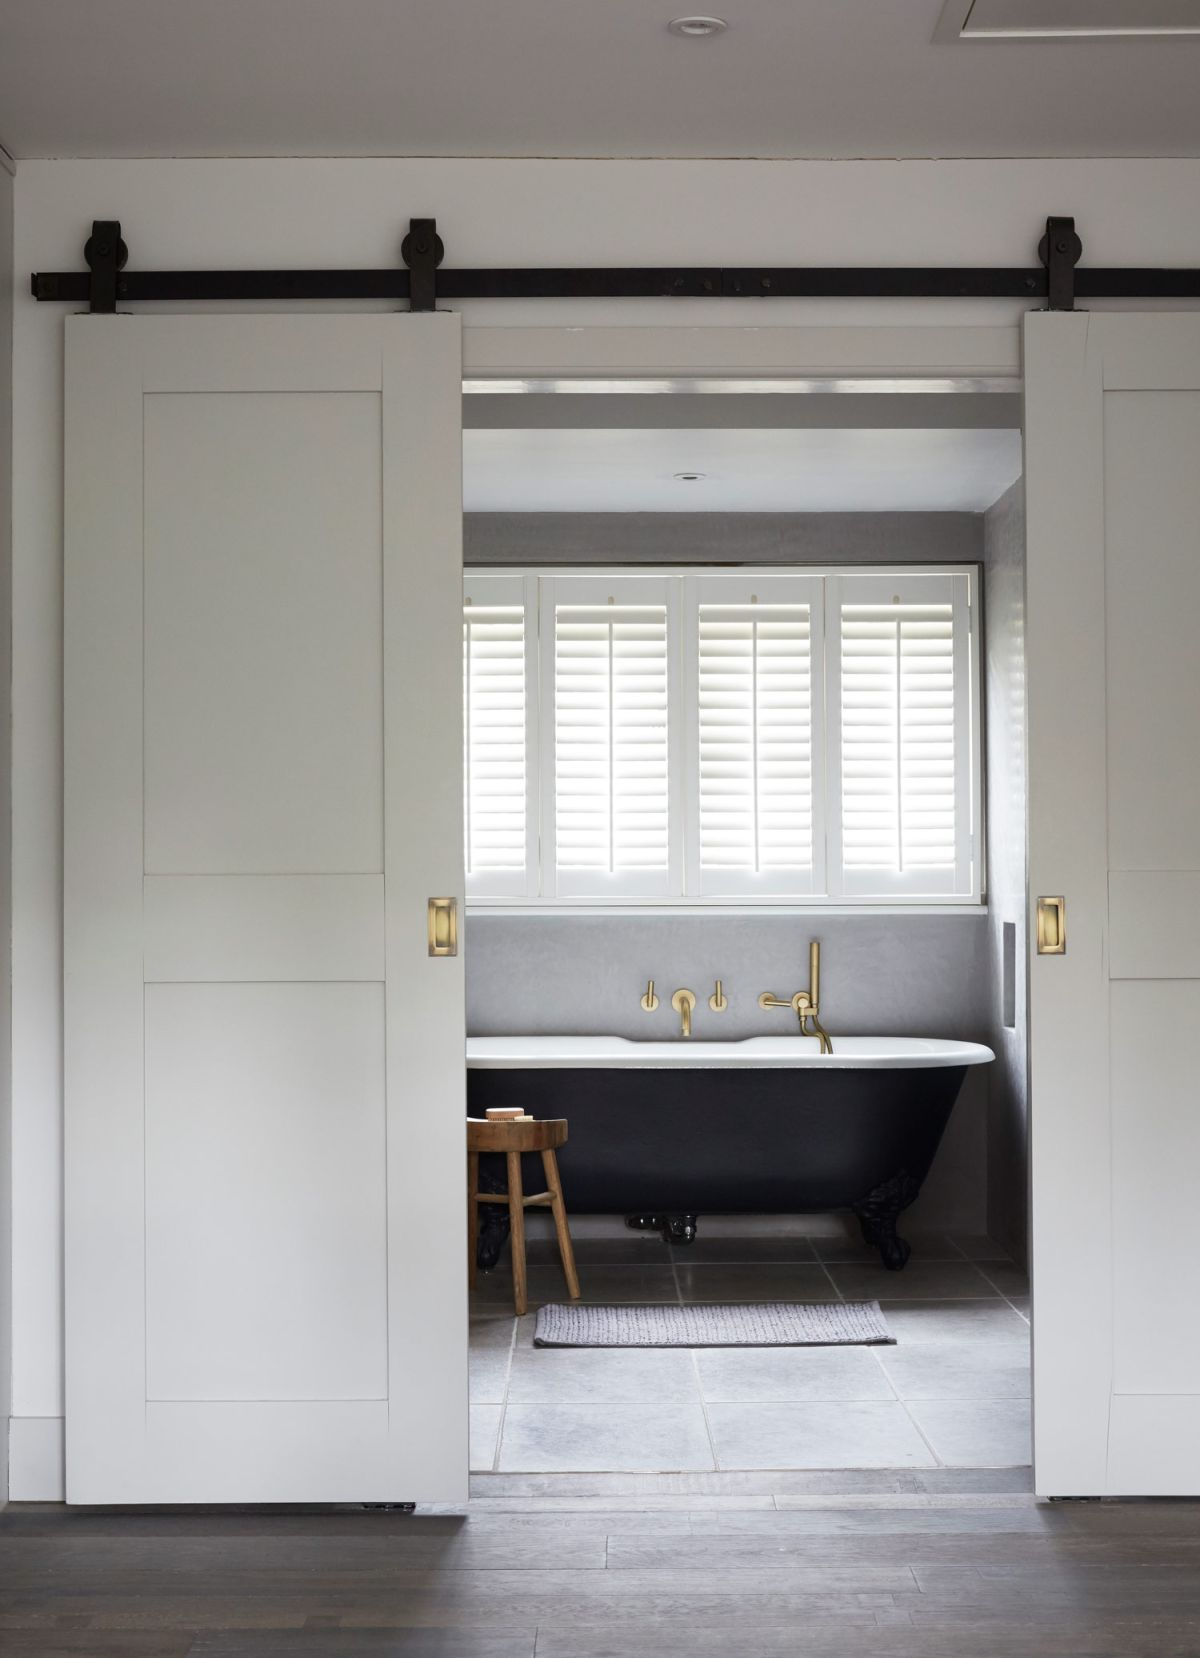 Ensuite Ideas: 17 clever ideas for an ensuite bathroom